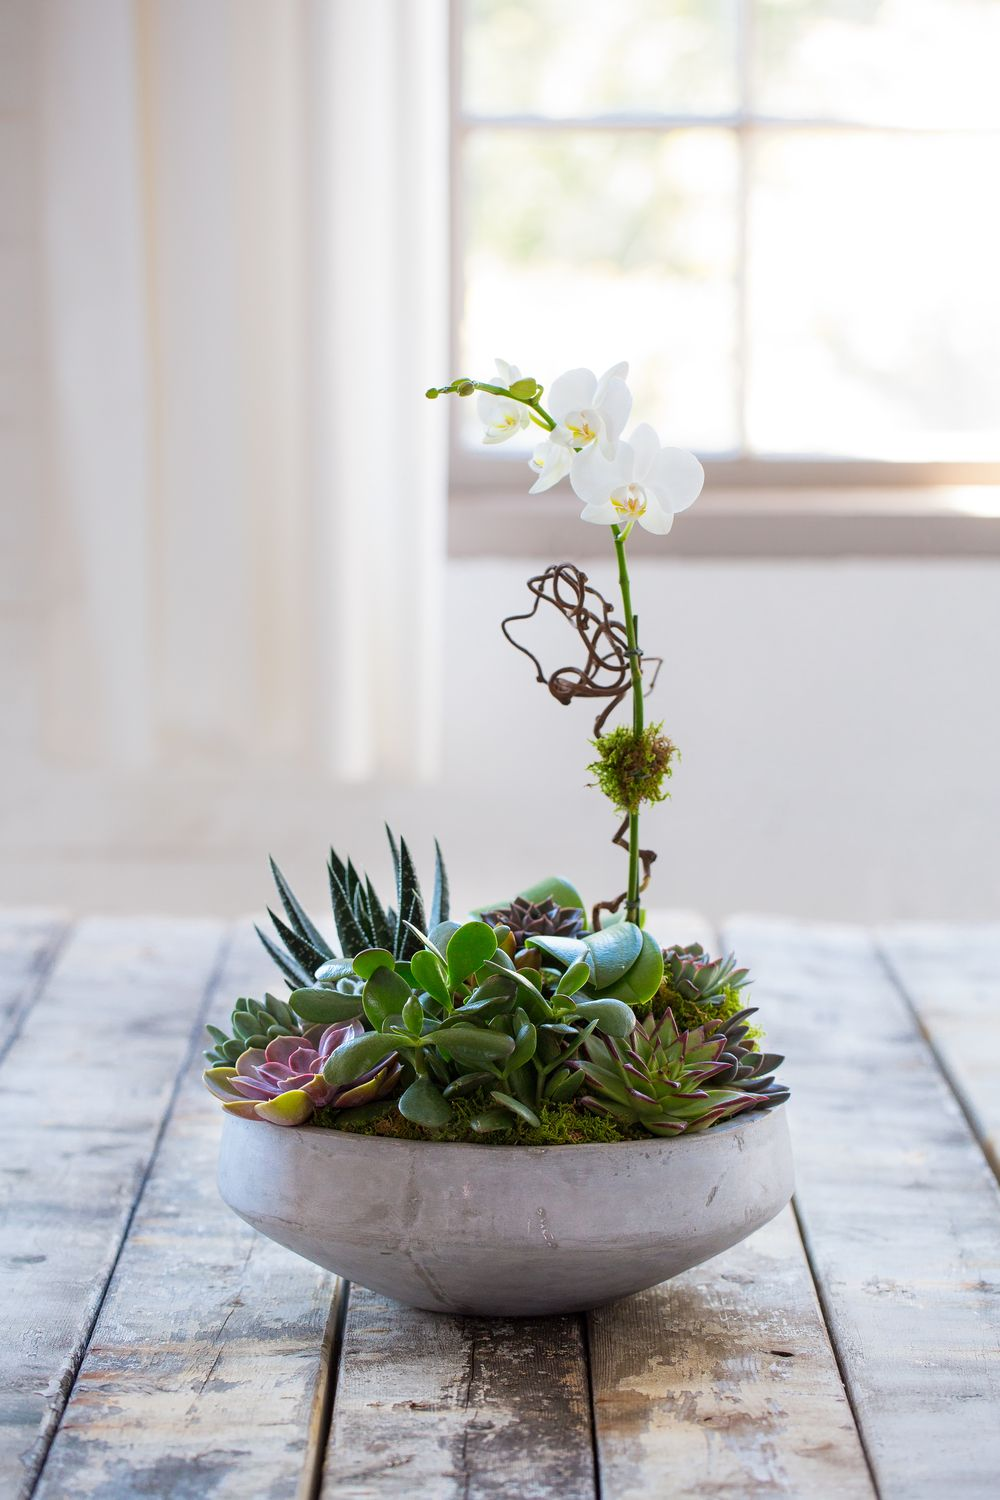 Nature's most beautiful combination; orchids and succulents designed  together in a low stone bowl. With minimal care will continue to beautify  any space.  14x19 as shown    Designed and hand delivered by our staff.